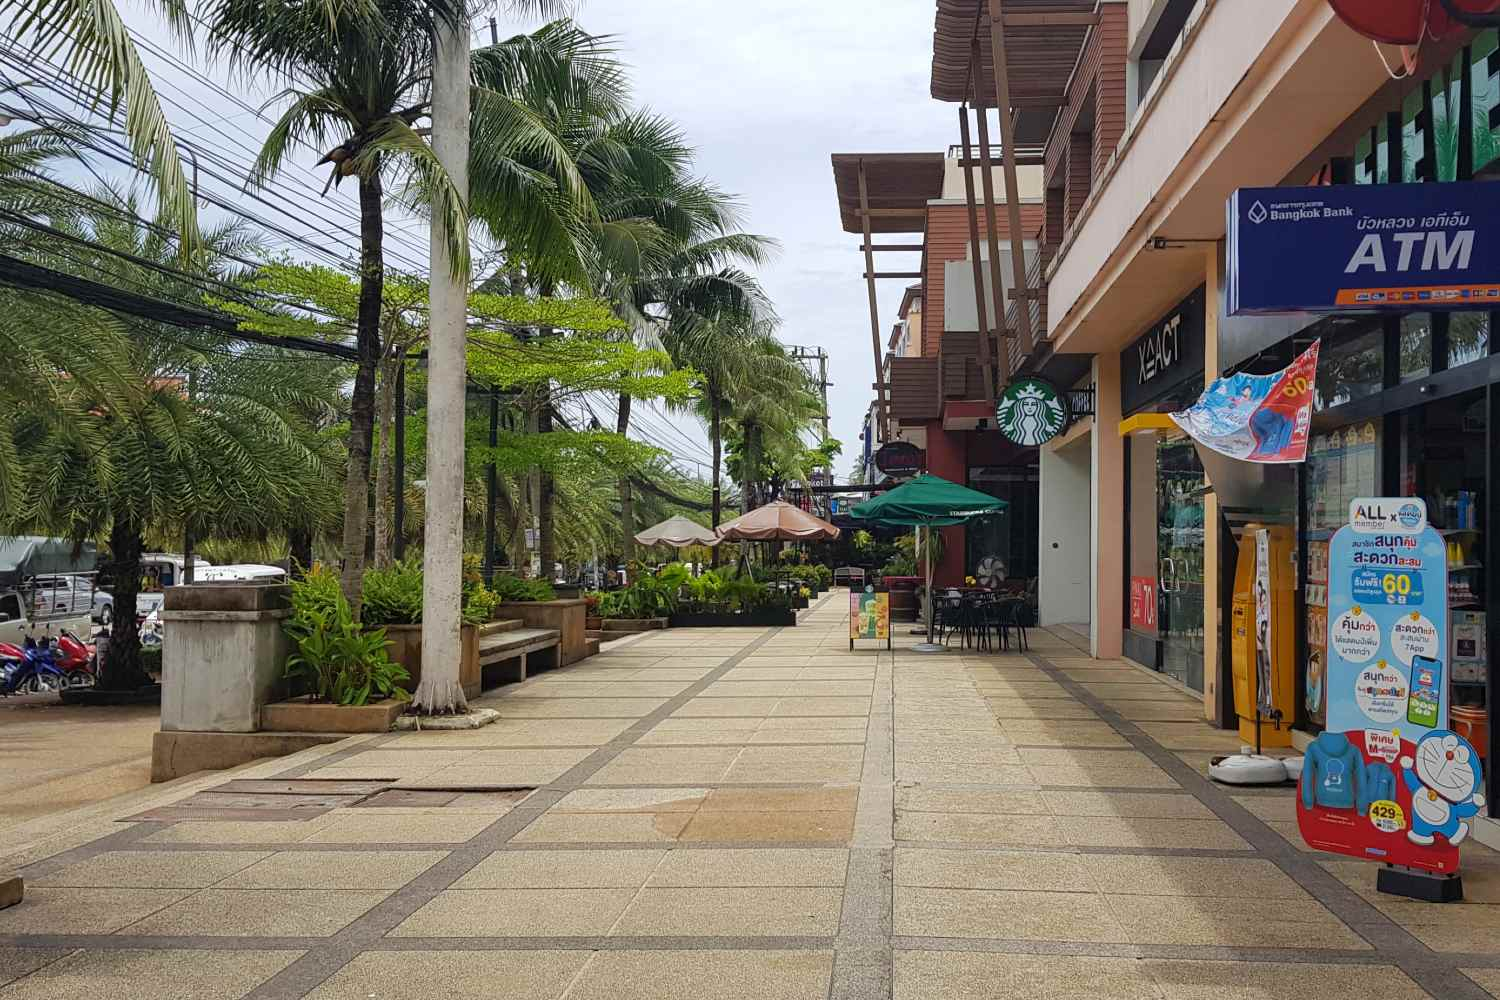 The street where the Avani Ao Nang Cliff Krabi Resort is located.